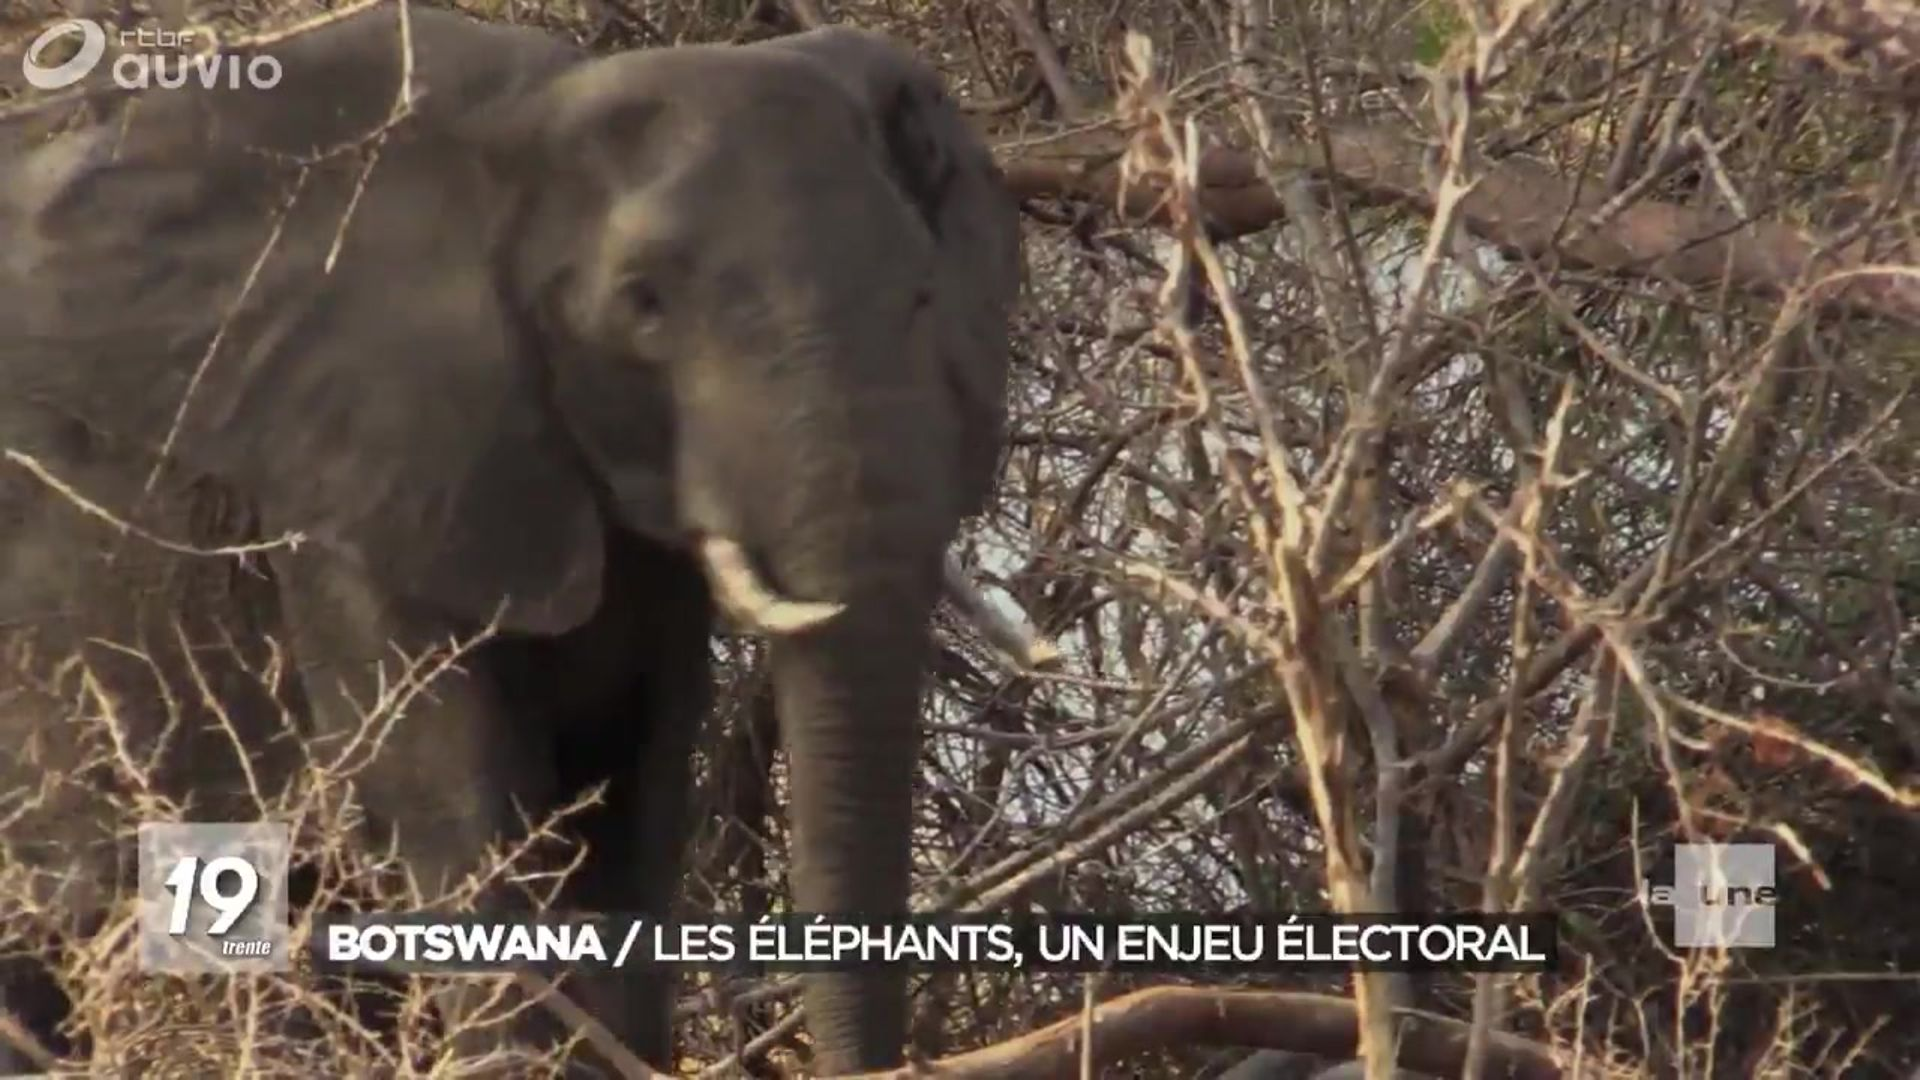 Signification Elephant Porte Bonheur https://www.rtbf.be/auvio/detail_contacts-express?id=2556907